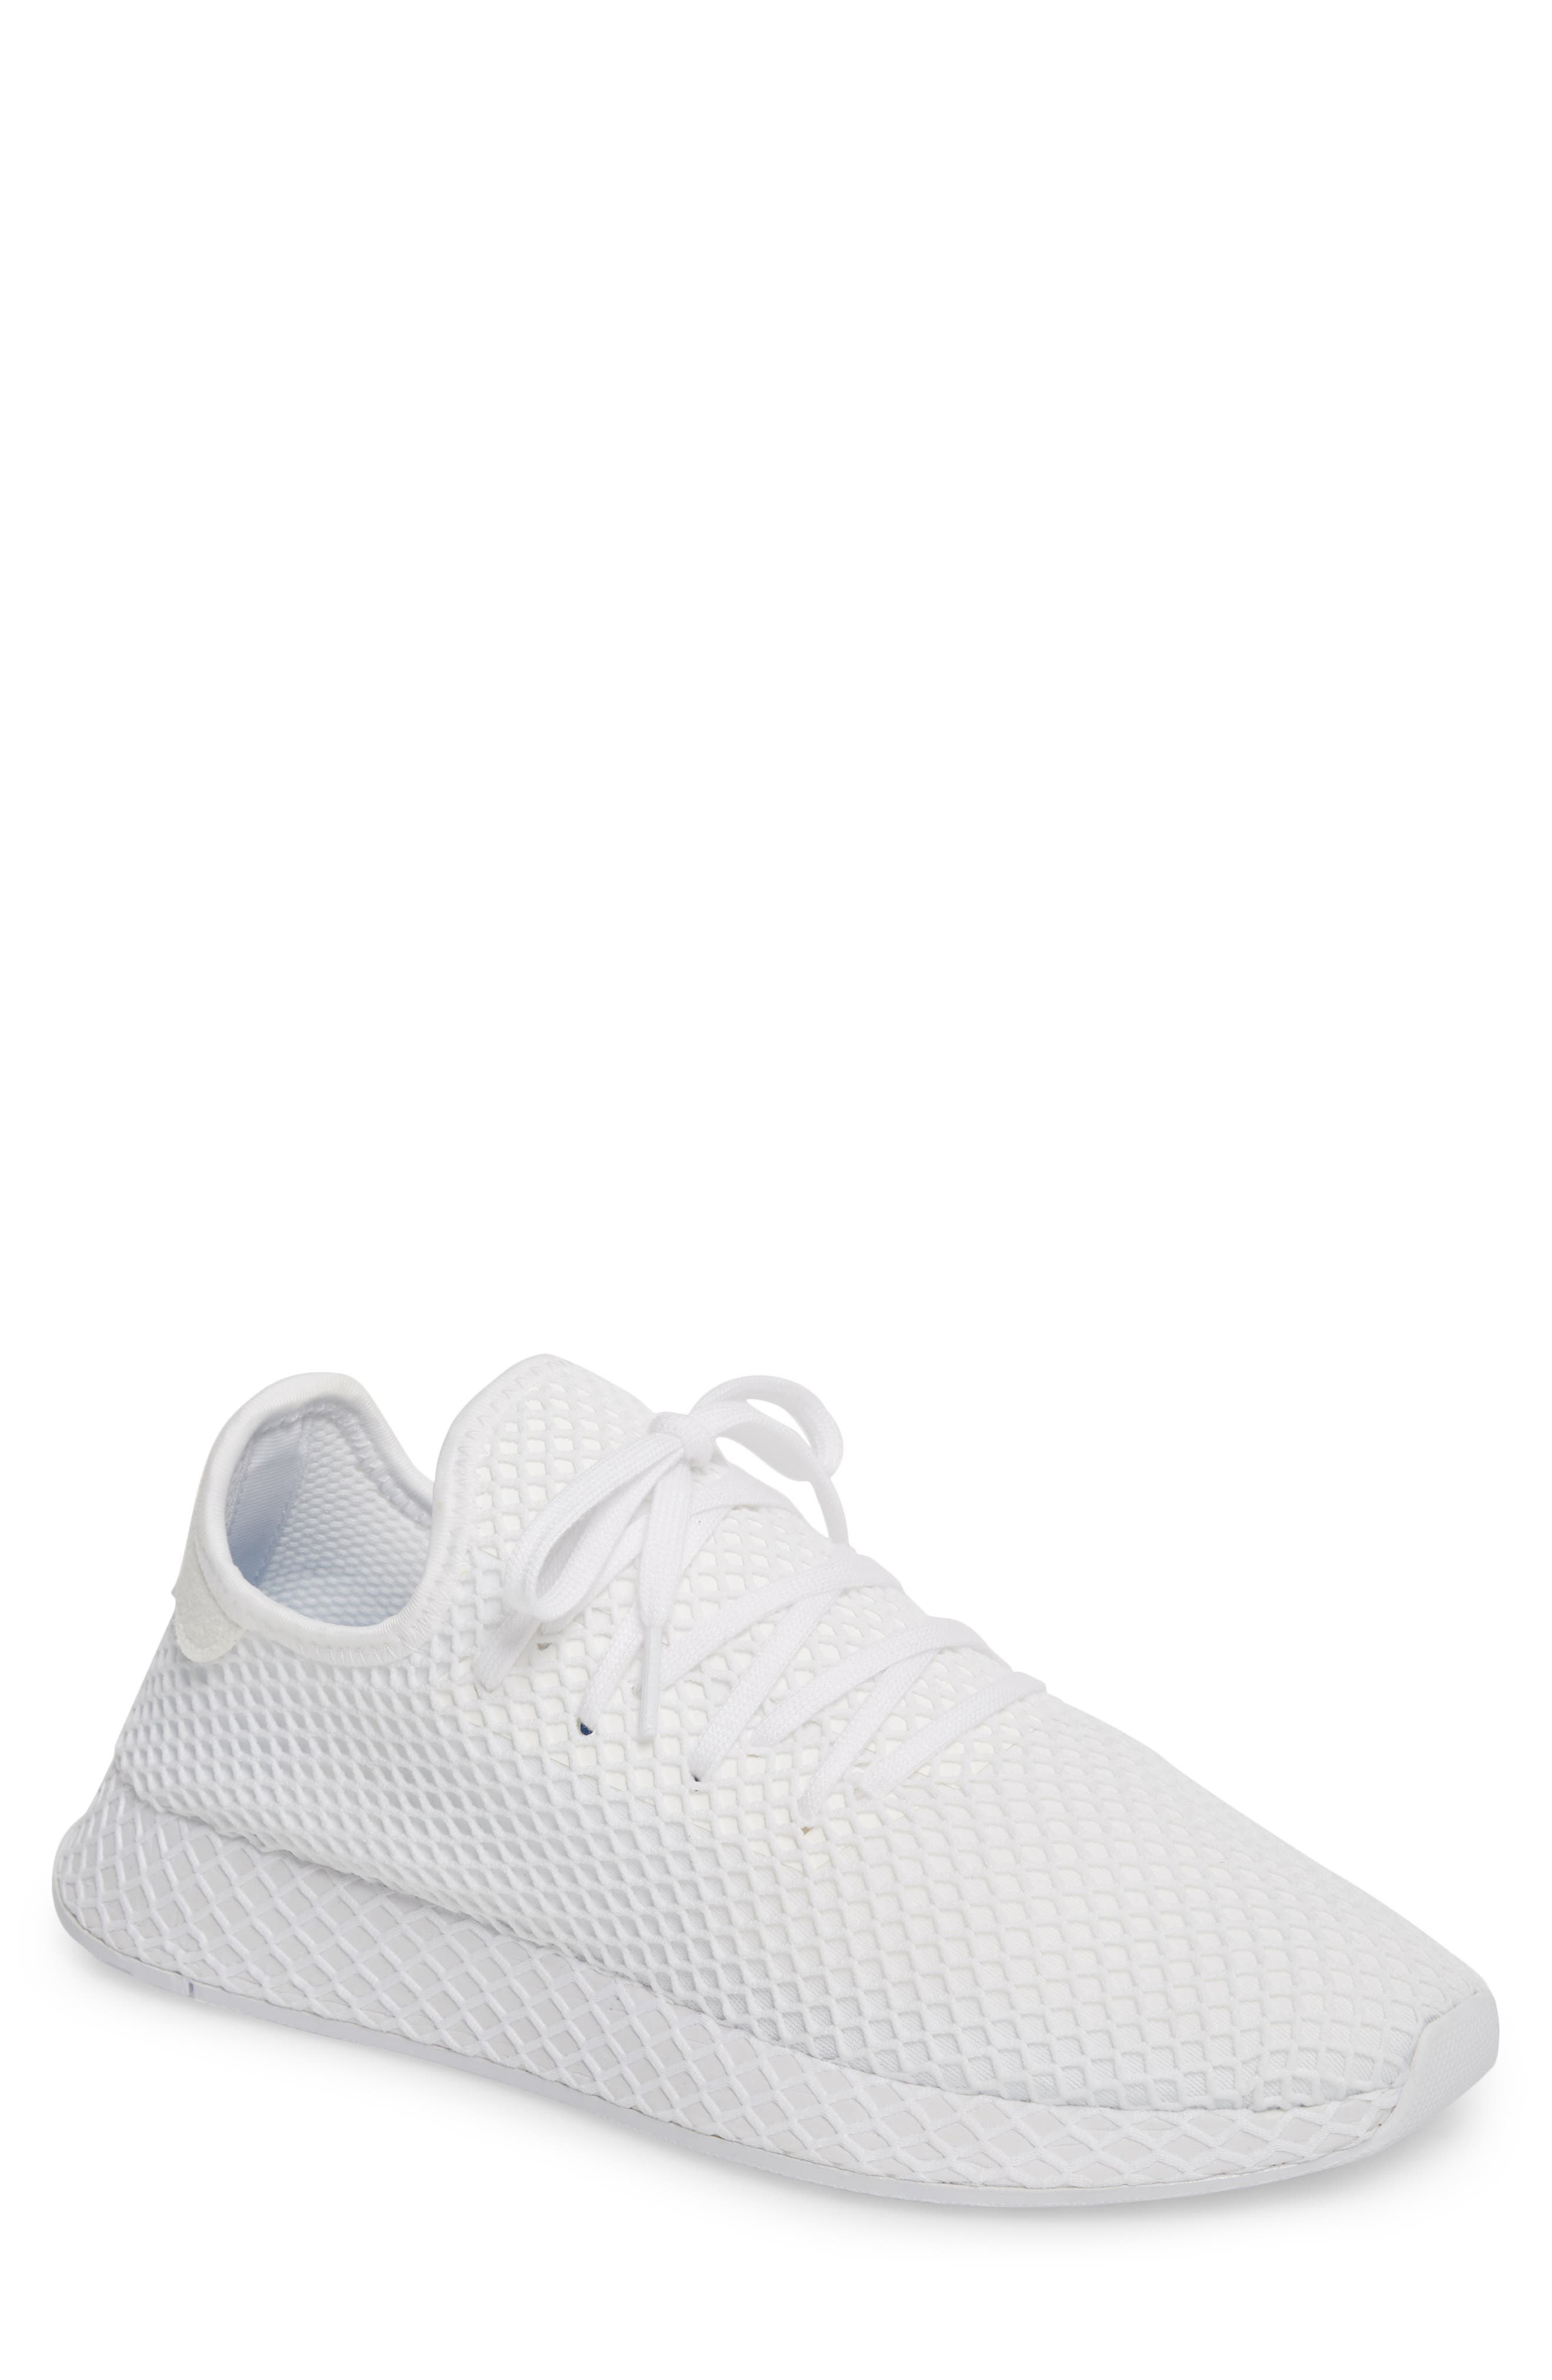 Deerupt Runner Sneaker,                         Main,                         color, 100